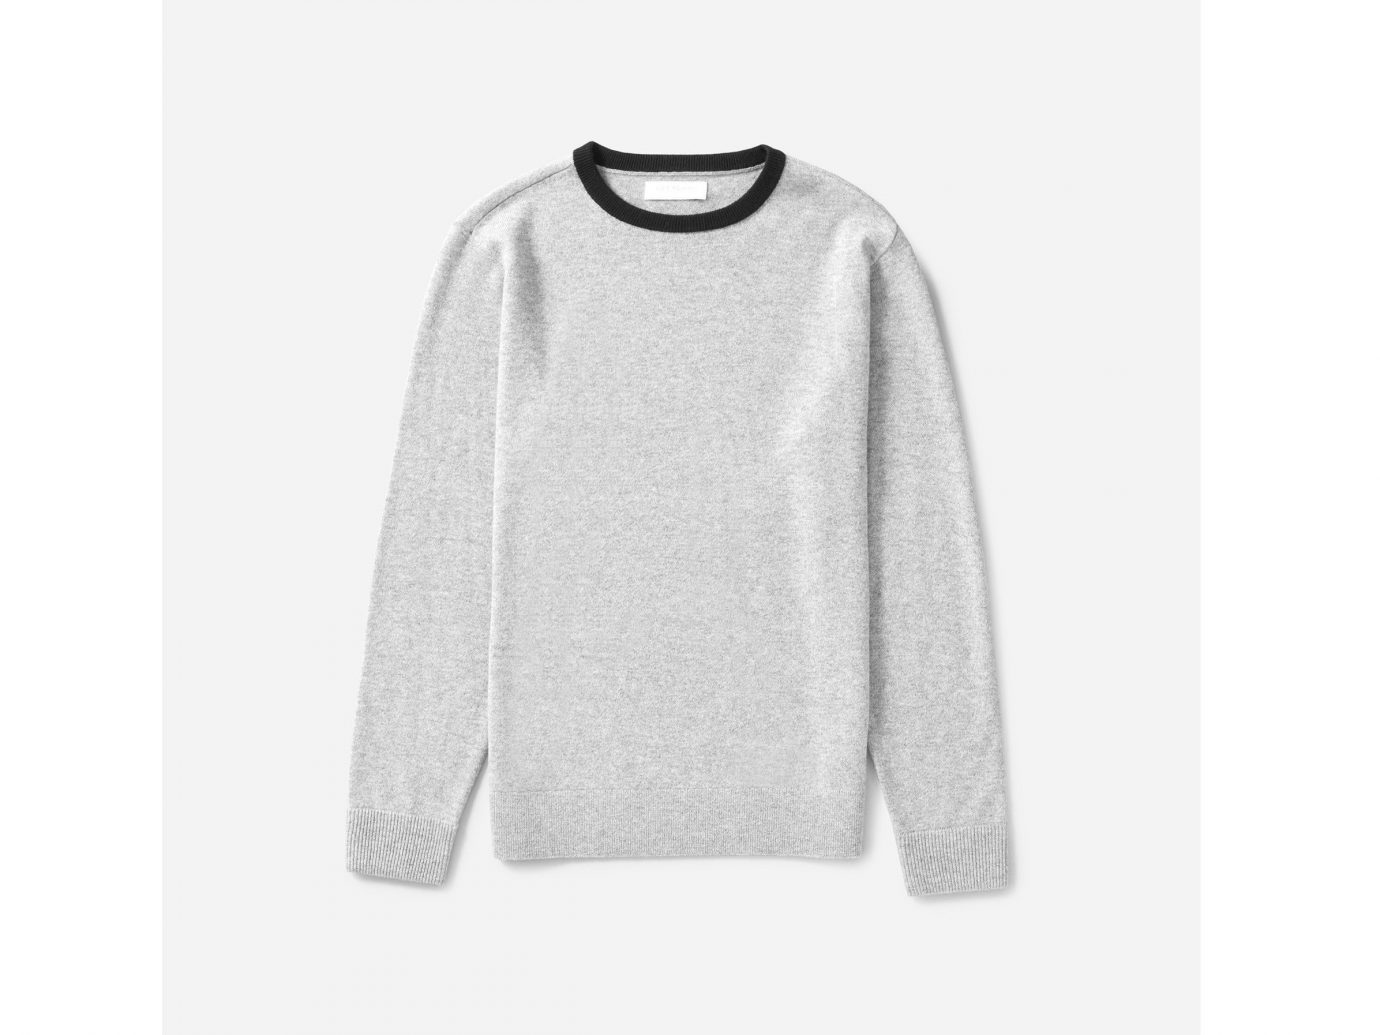 Gift Guides Travel Shop white clothing sleeve long sleeved t shirt shoulder neck product product design sweater colored